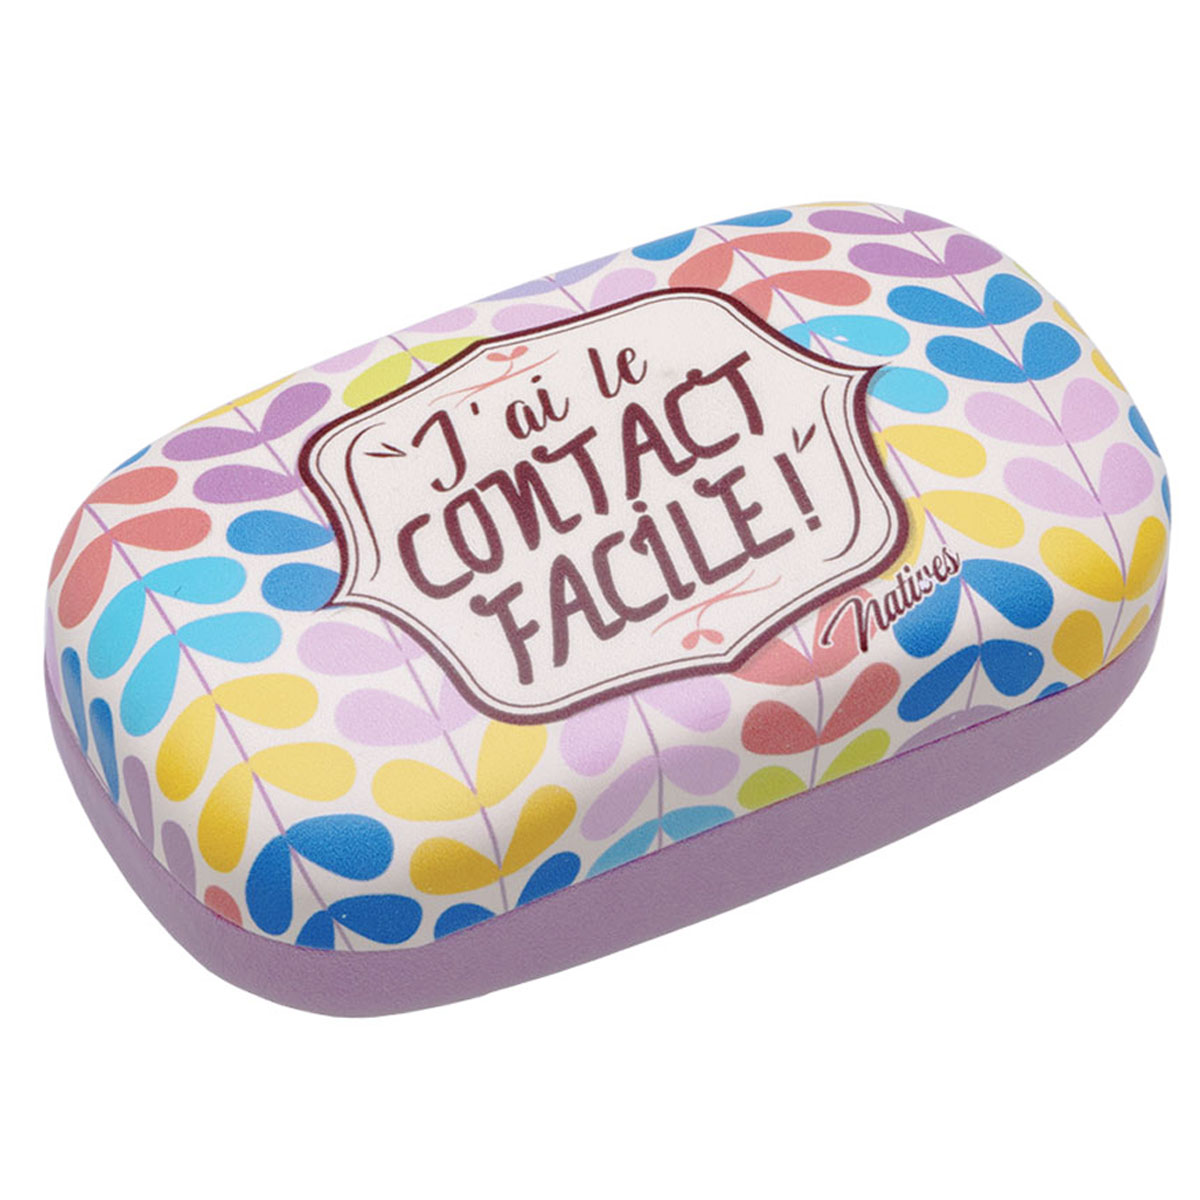 Etui à lentilles de contact \'French Vintage\' (J\'ai le Contact Facile !) - 85x48x3 cm - [Q6991]